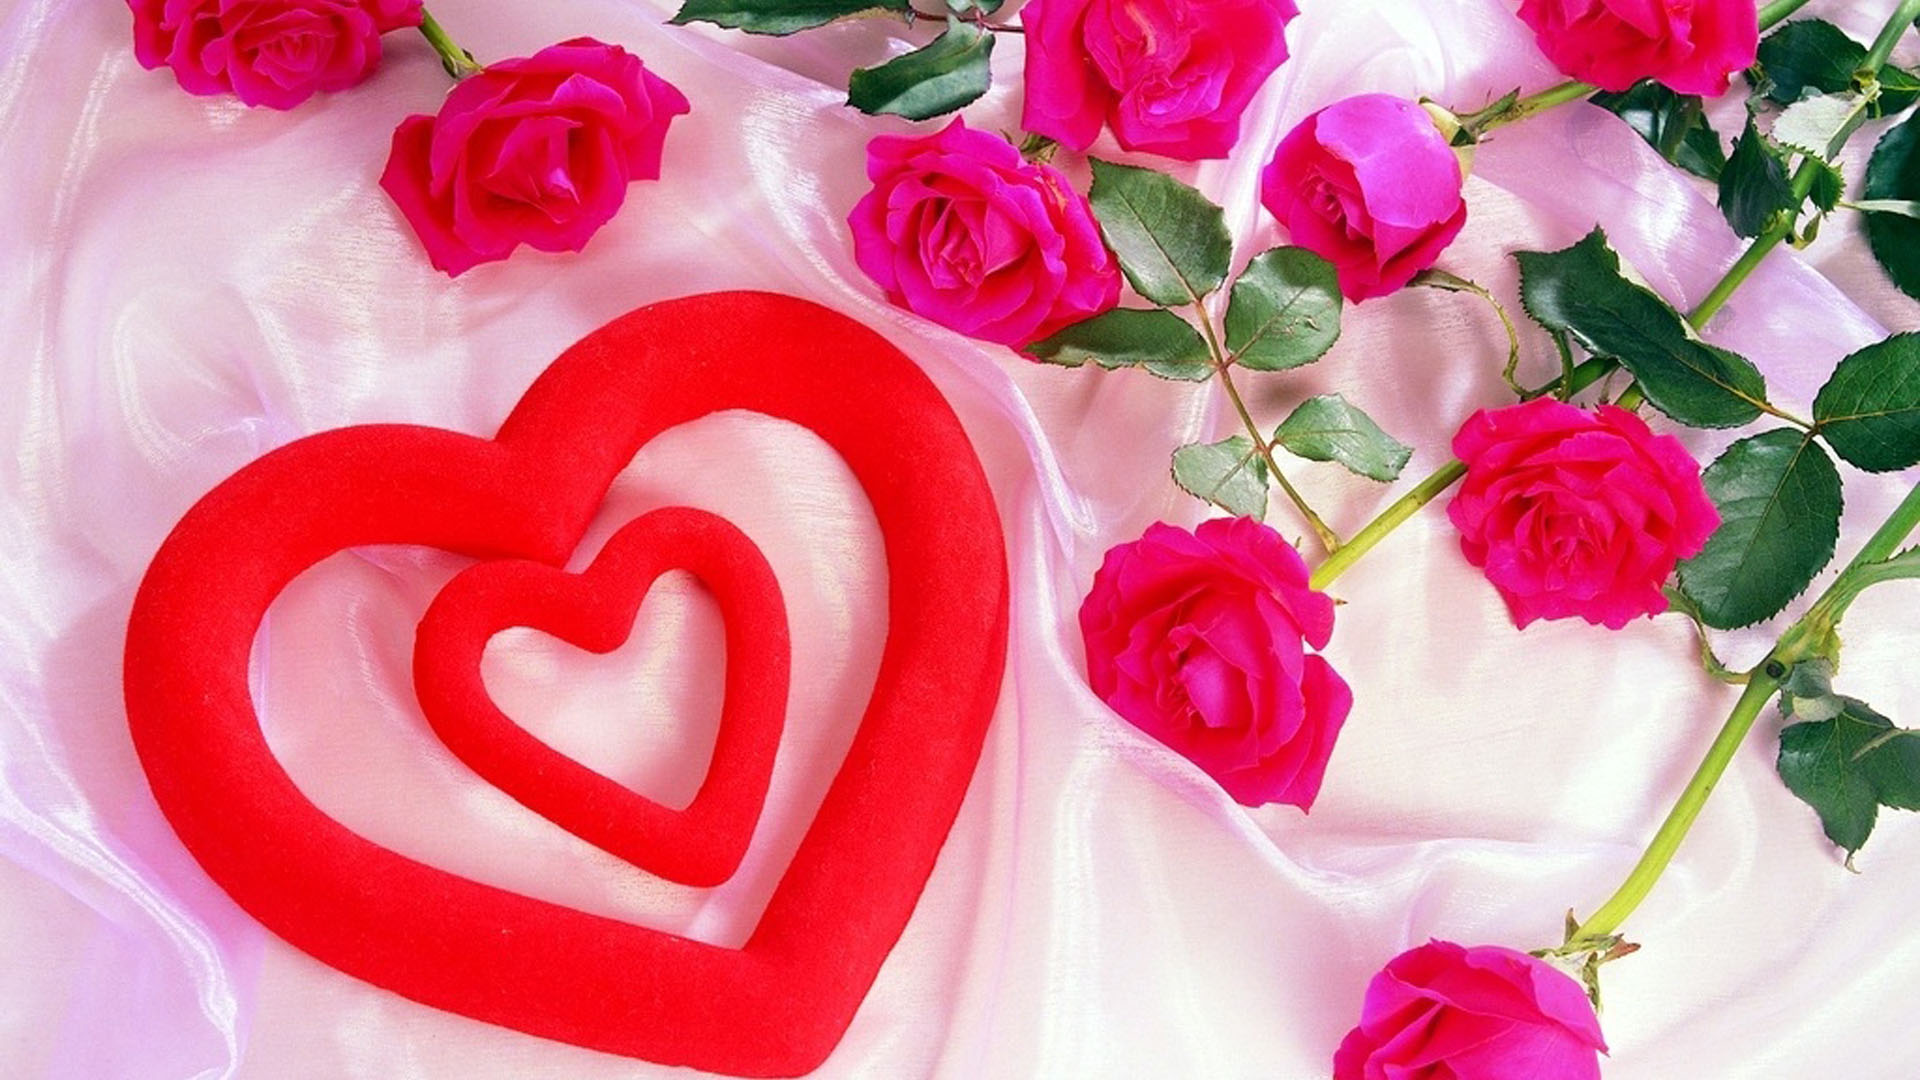 red-heart-with-pink-roses-wallpaper - hd wallpaper